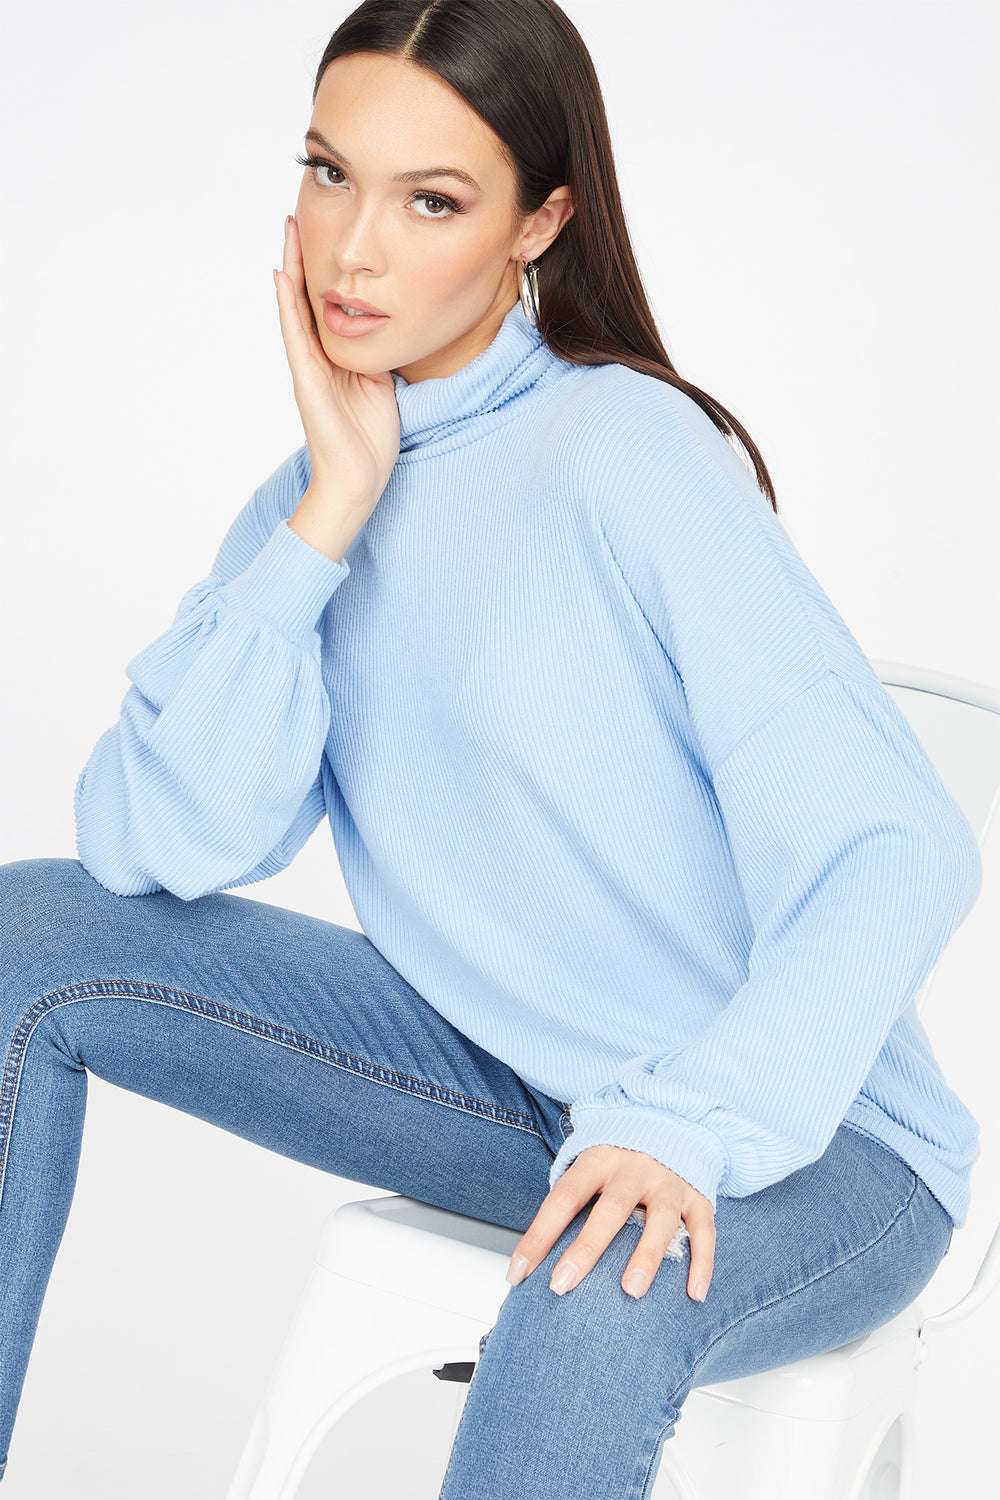 Knit Turtleneck Long Dolman Sleeve Top Light Blue